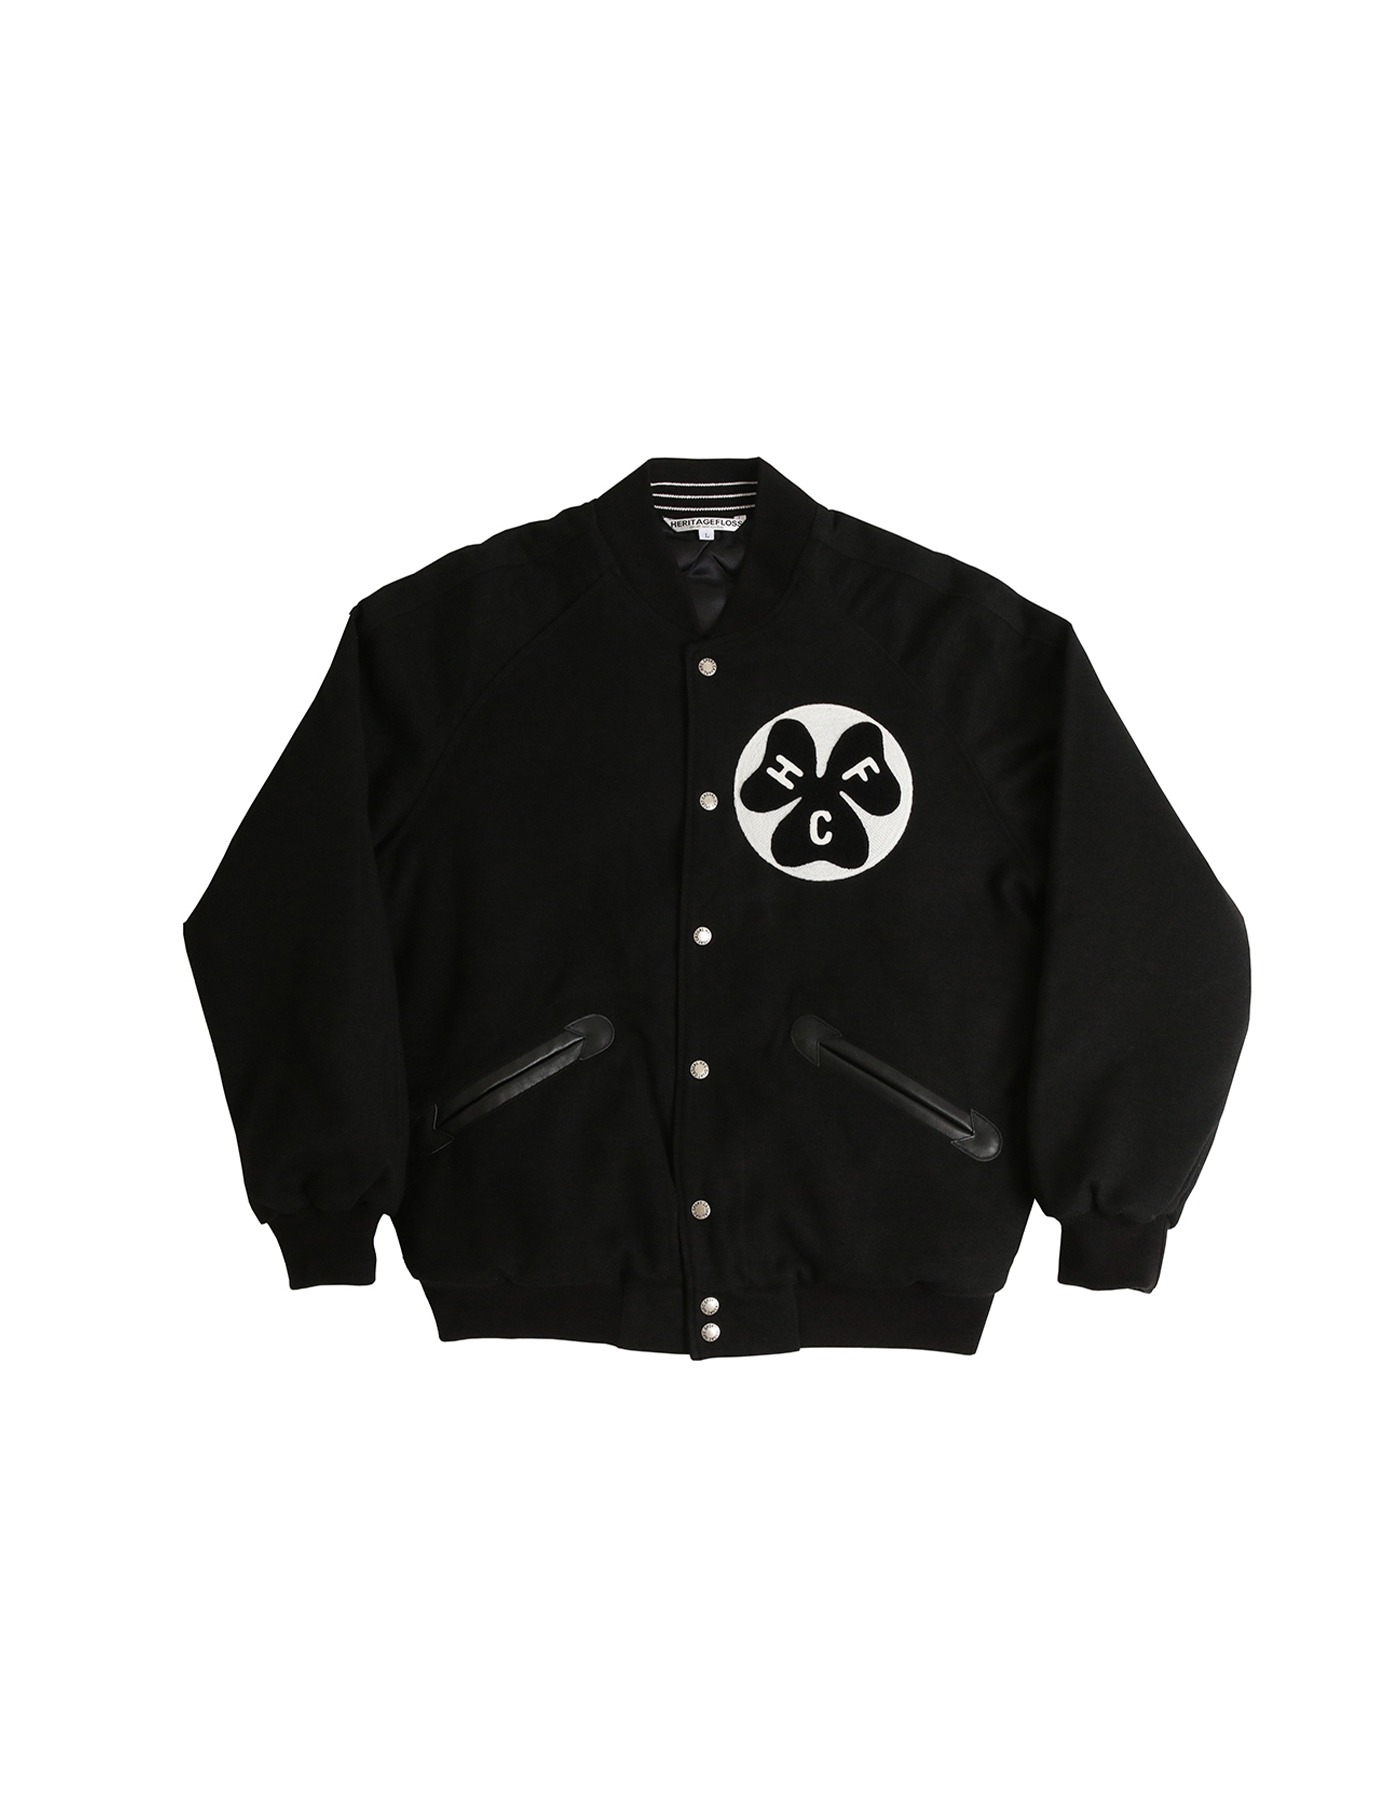 S&C FAUX WOOL VARSITY JACKET / BLACK